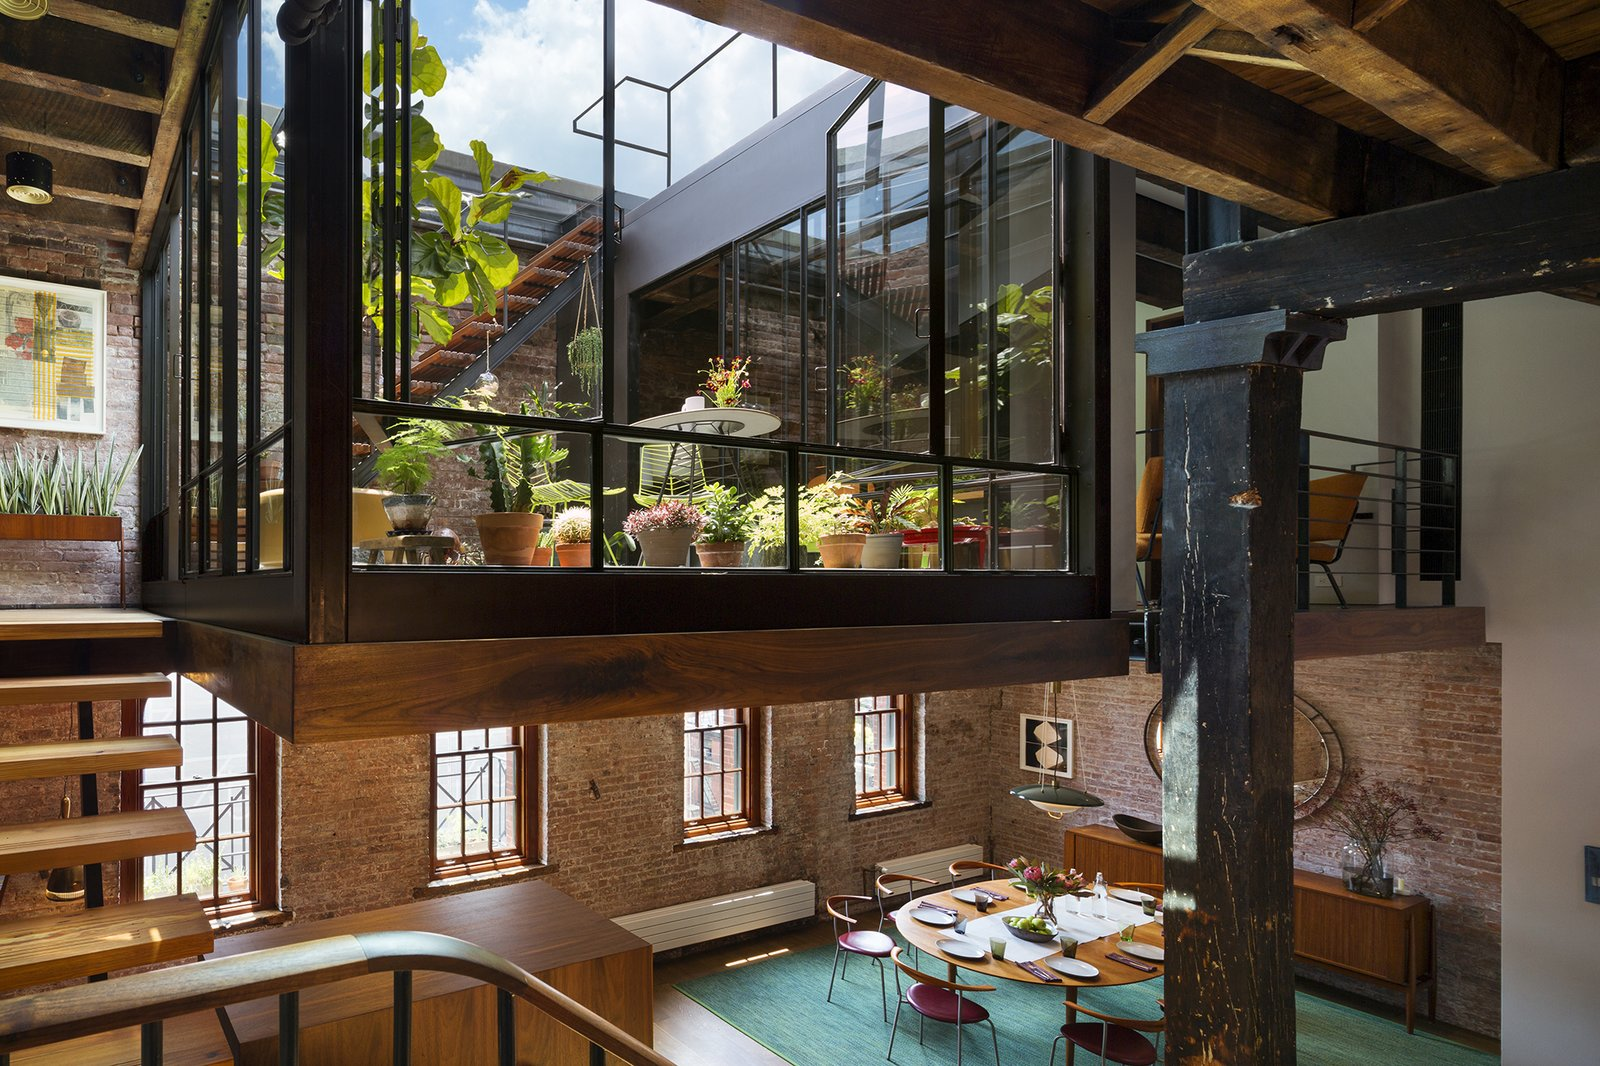 The court exposes the sky, fills the previously dark loft with natural daylight, and brings accessible outdoor space into the primary living zones.  Lush Life from Tribeca Loft